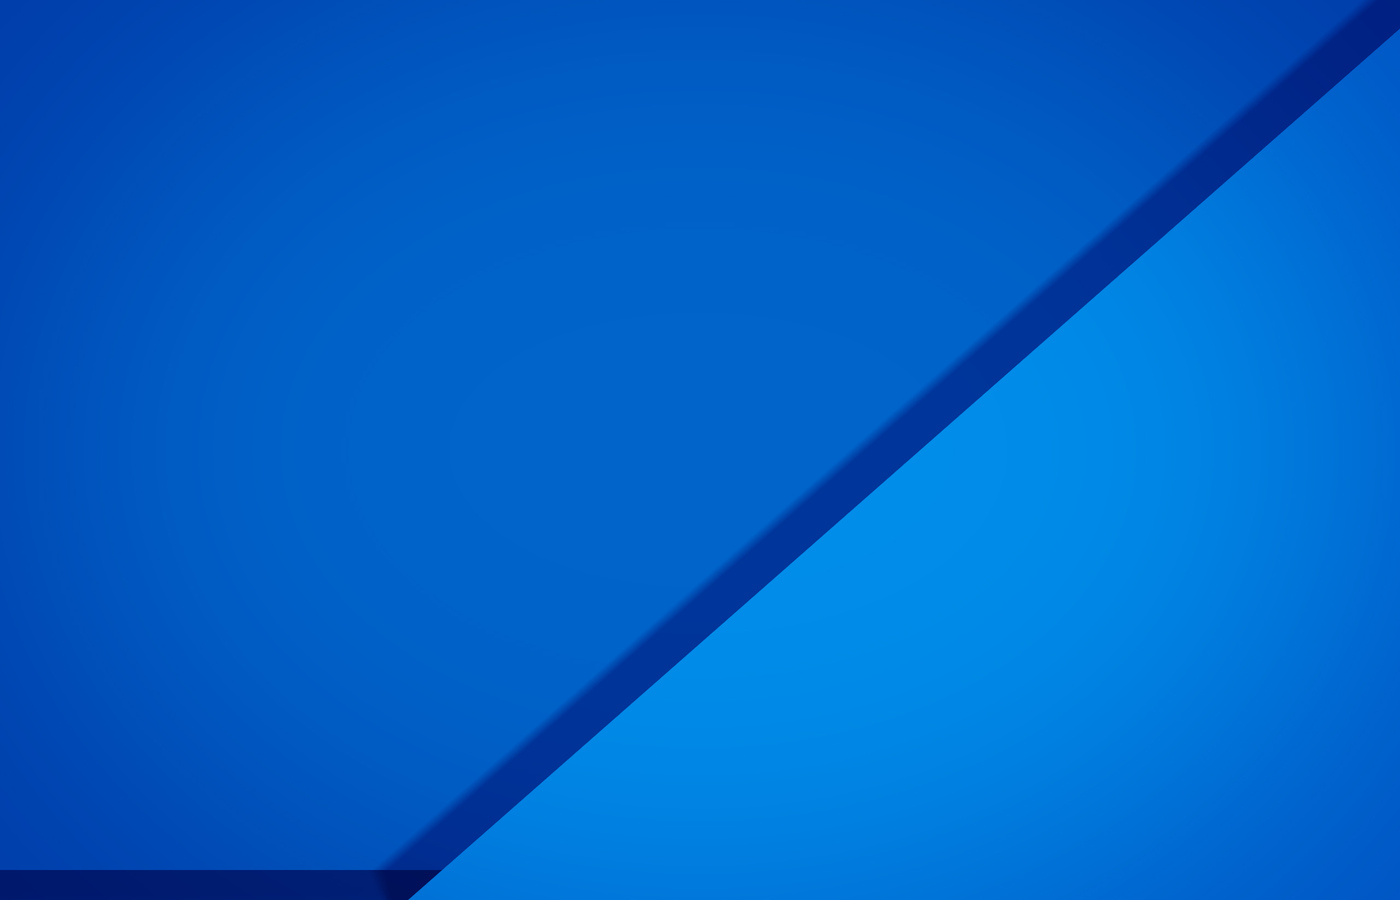 material-blue-abstract-wc.jpg